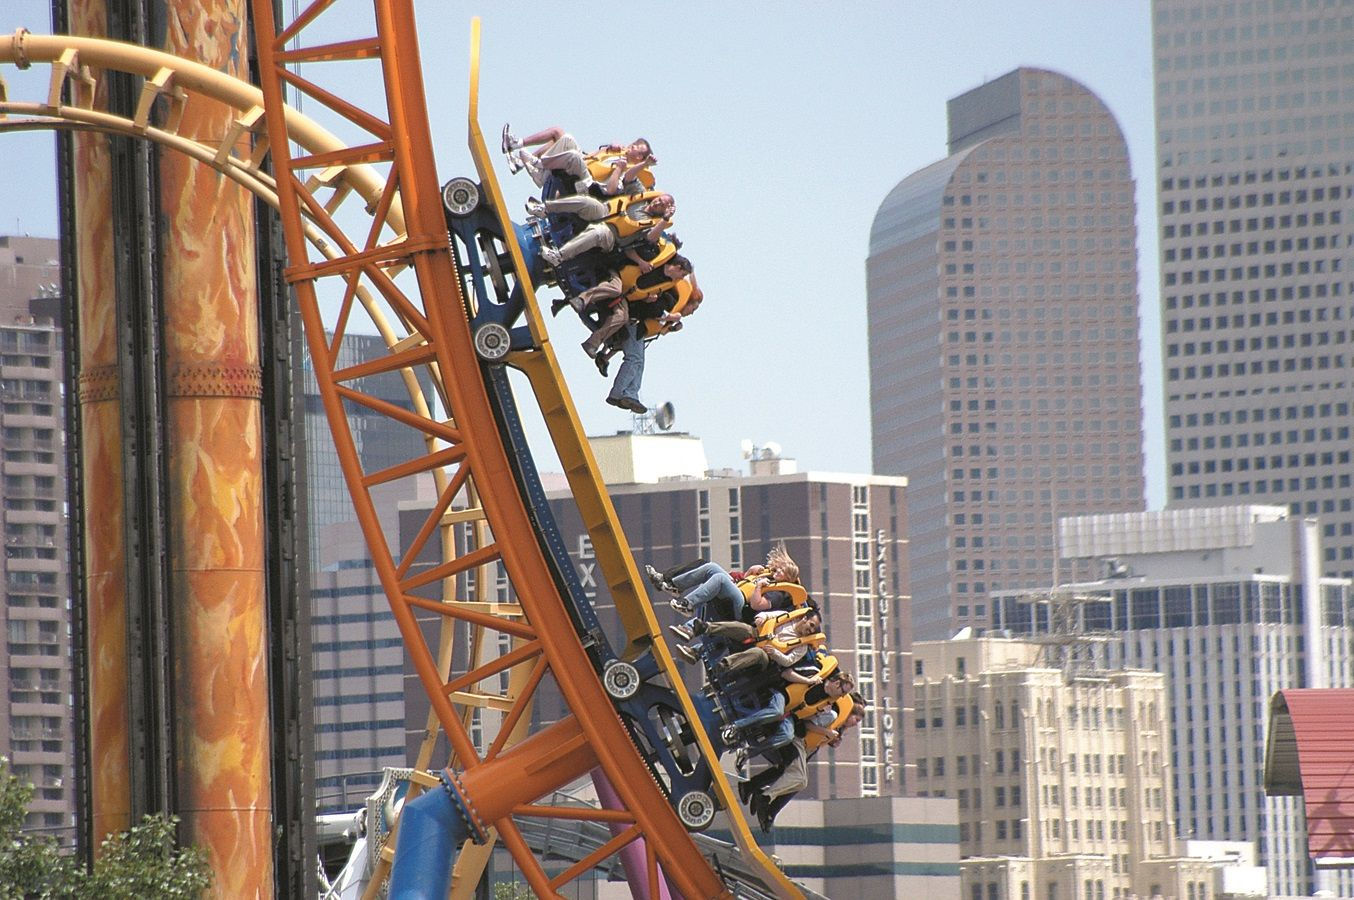 Things to do in Denver - Elitch Gardens